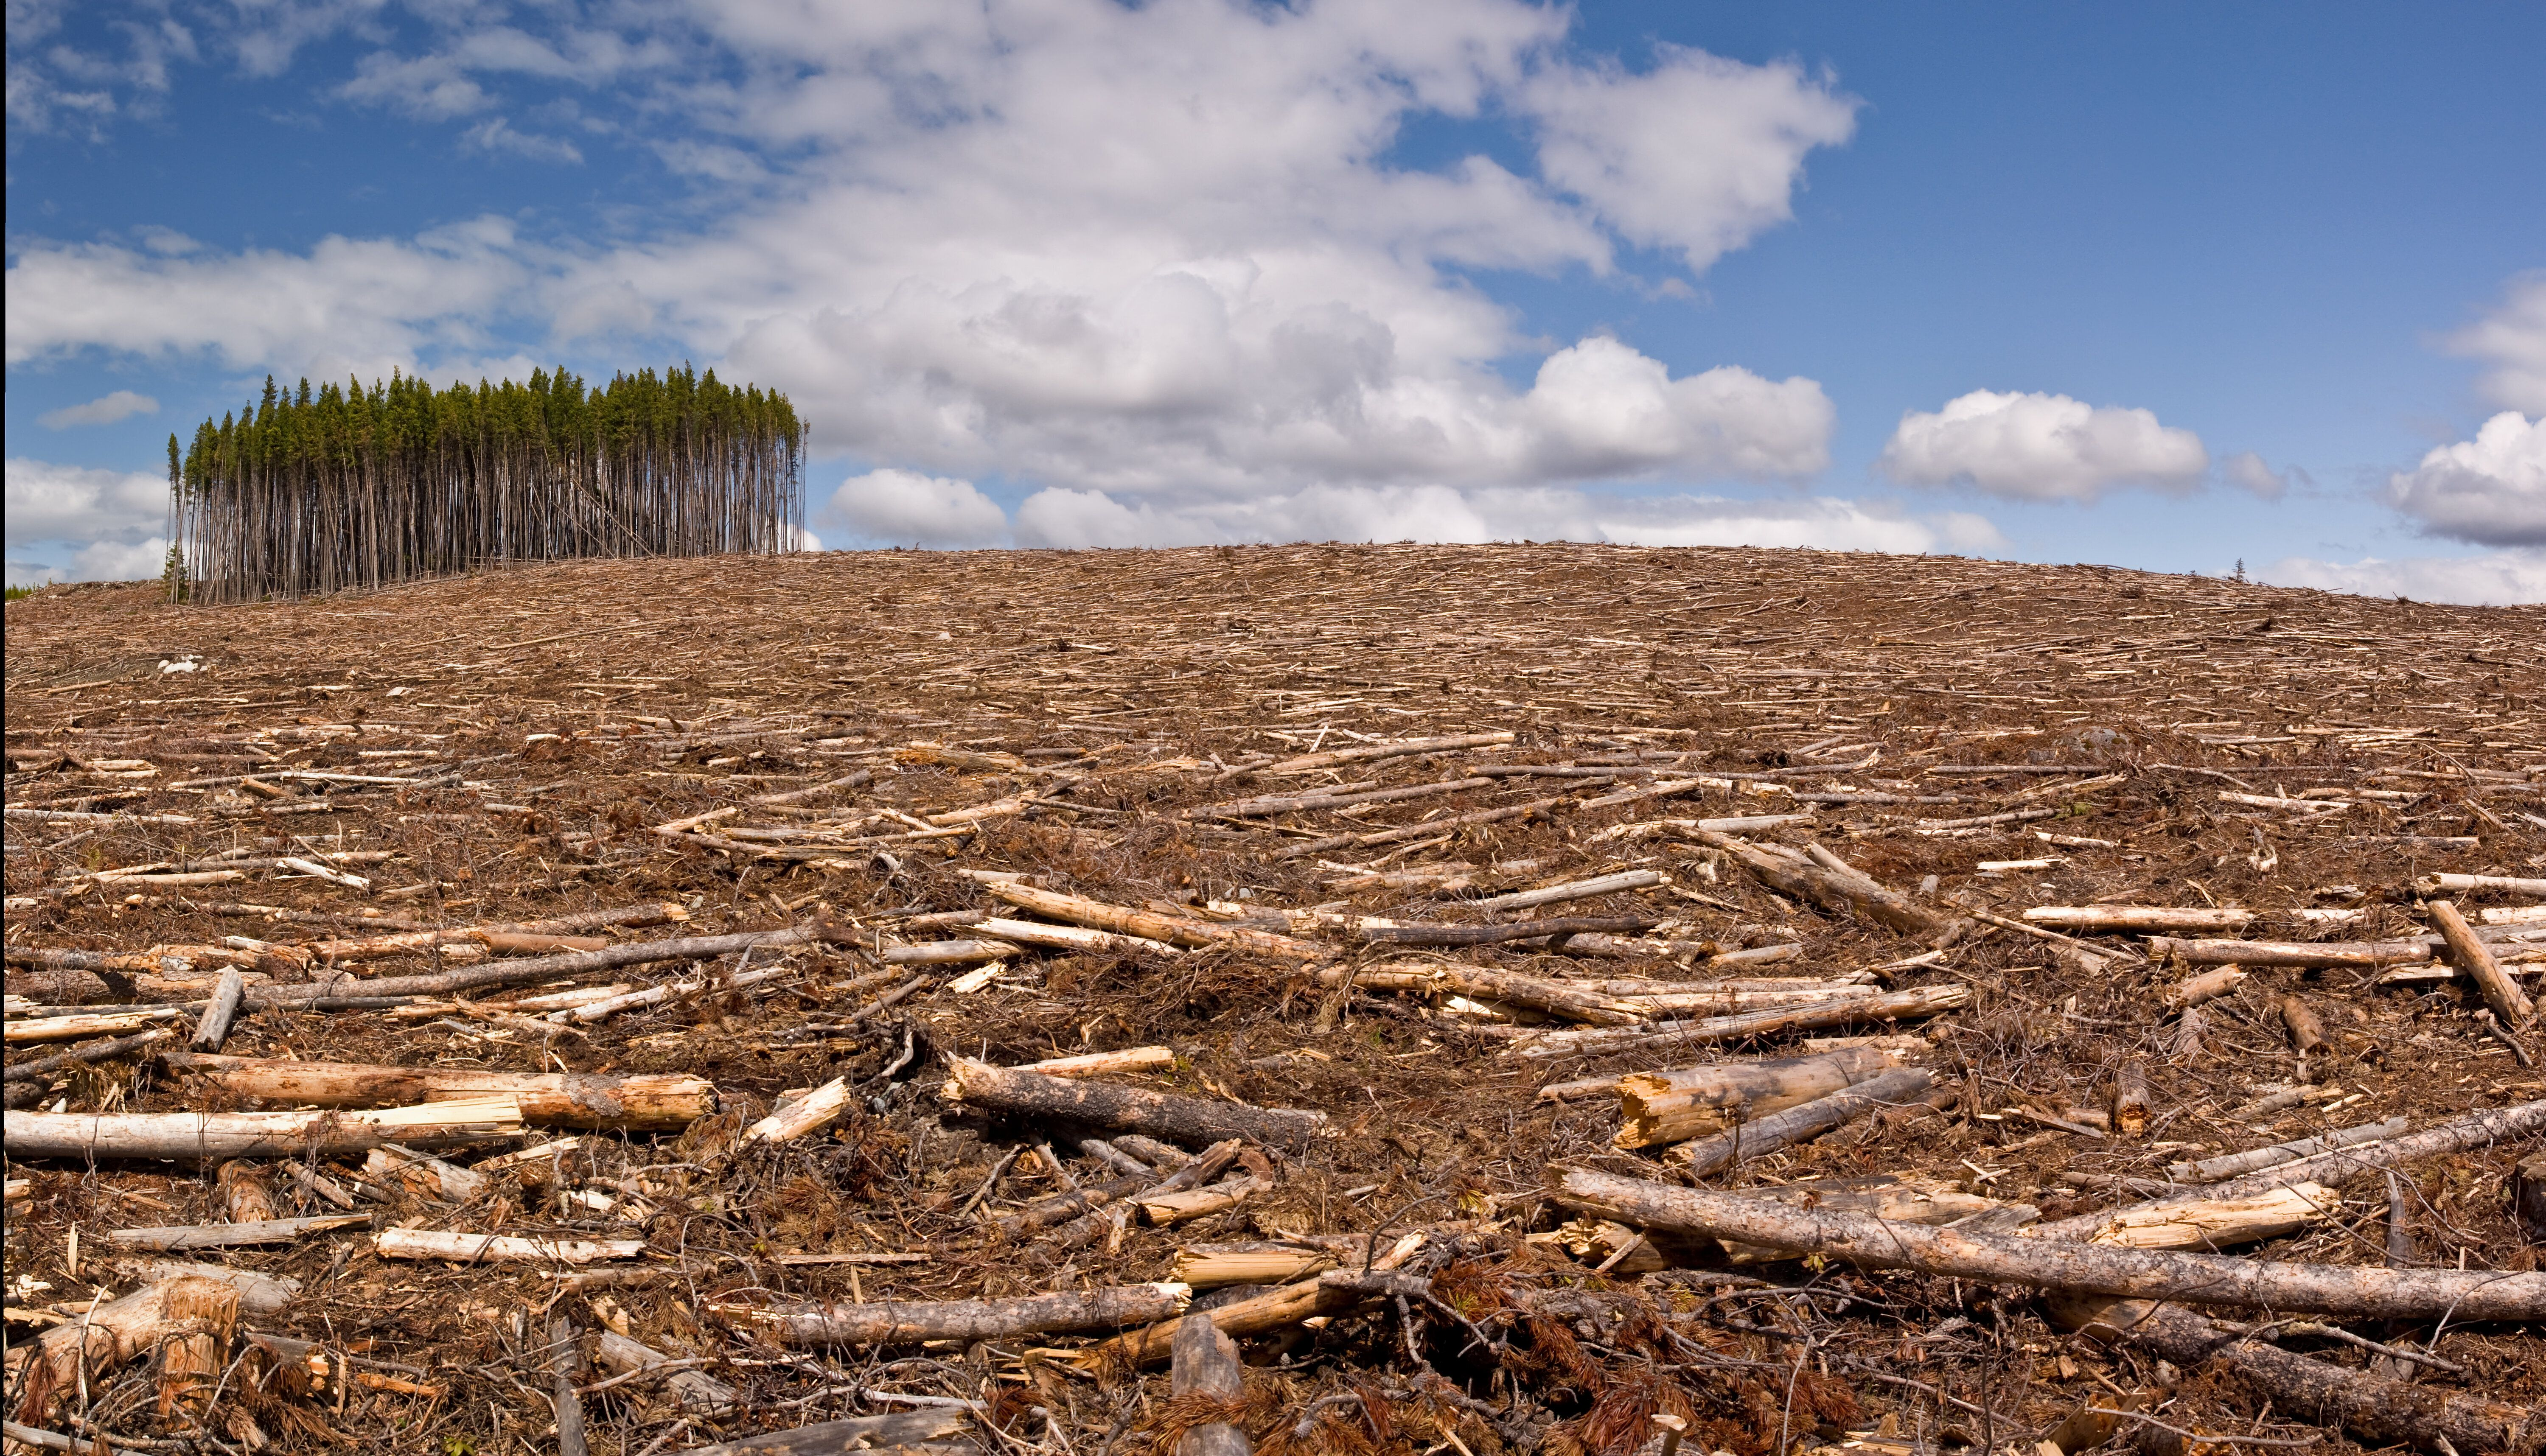 A small island of trees in a clear-cut pine forest. Dramatic changes in land use have contributed to the rise of zoonotic dis